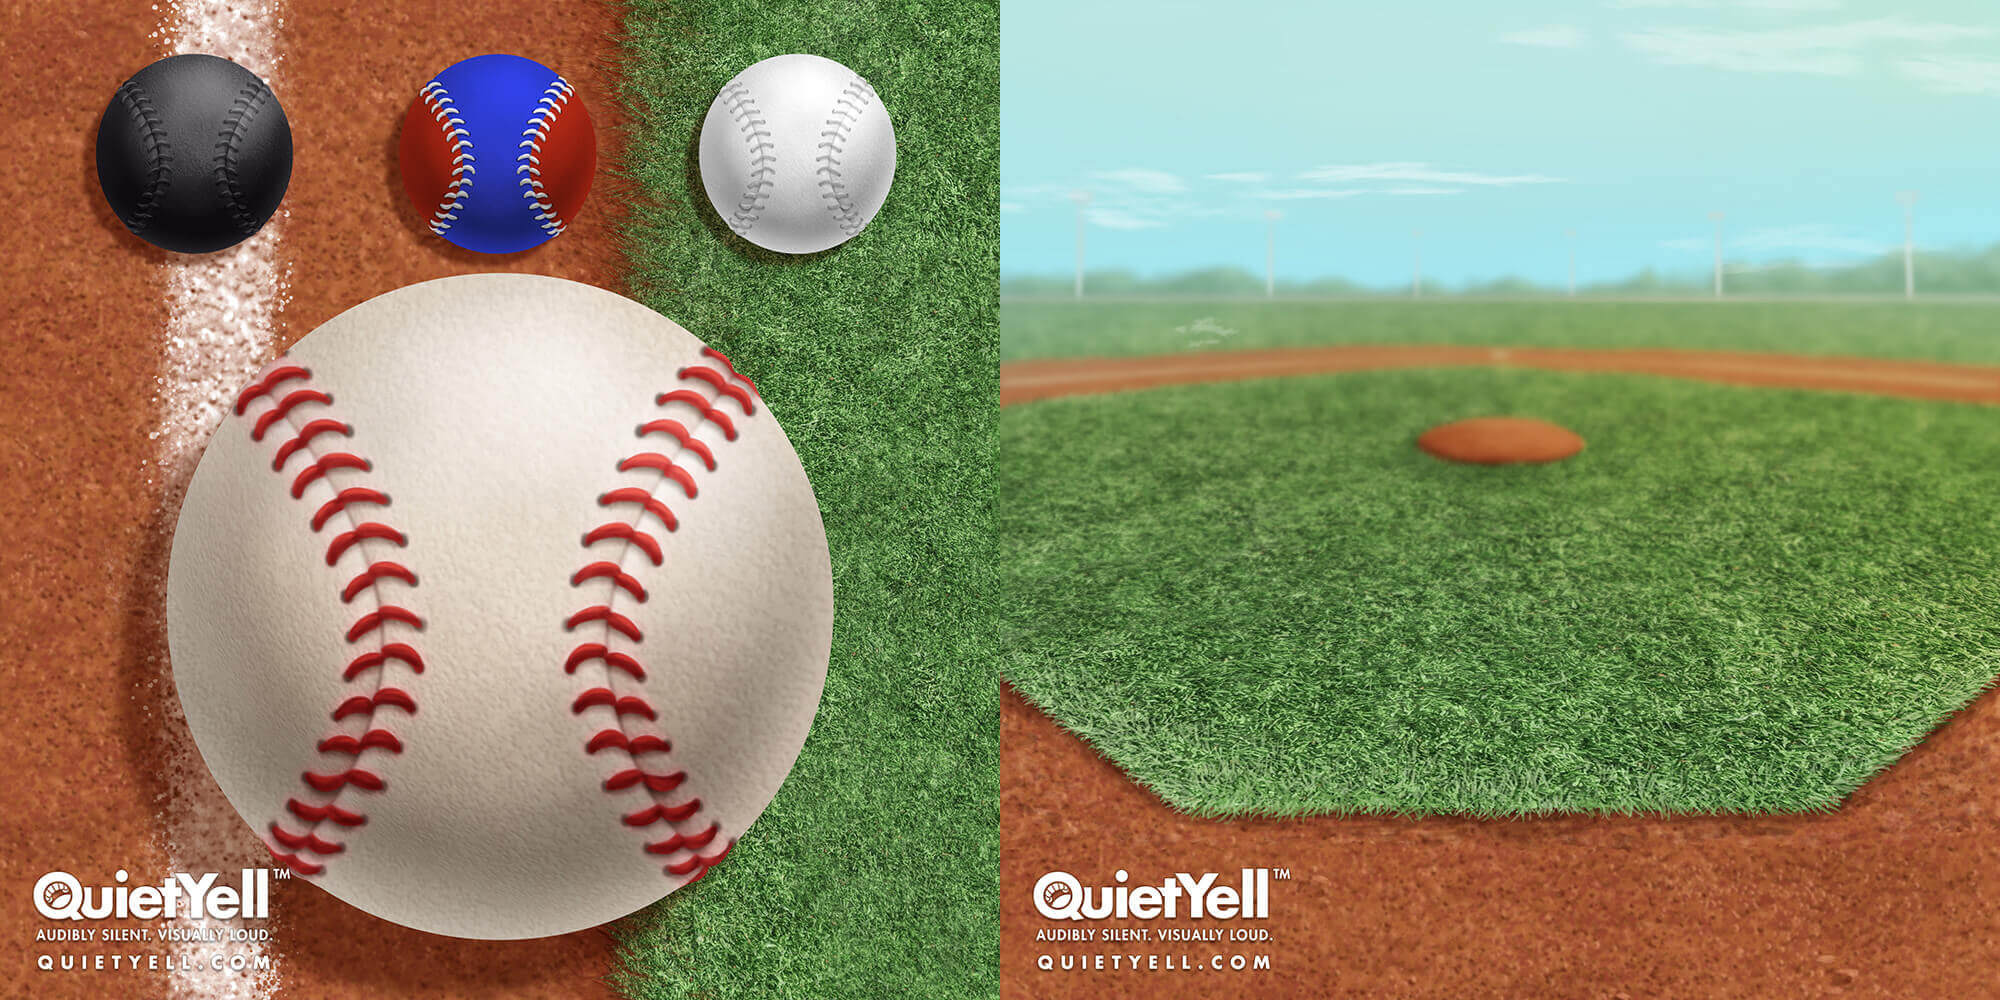 QuietYell Presents Scott Monaco's Sports (Baseball) Game Assets For Cataboom, All Rights Reserved | QuietYell.com and CataBoom.com